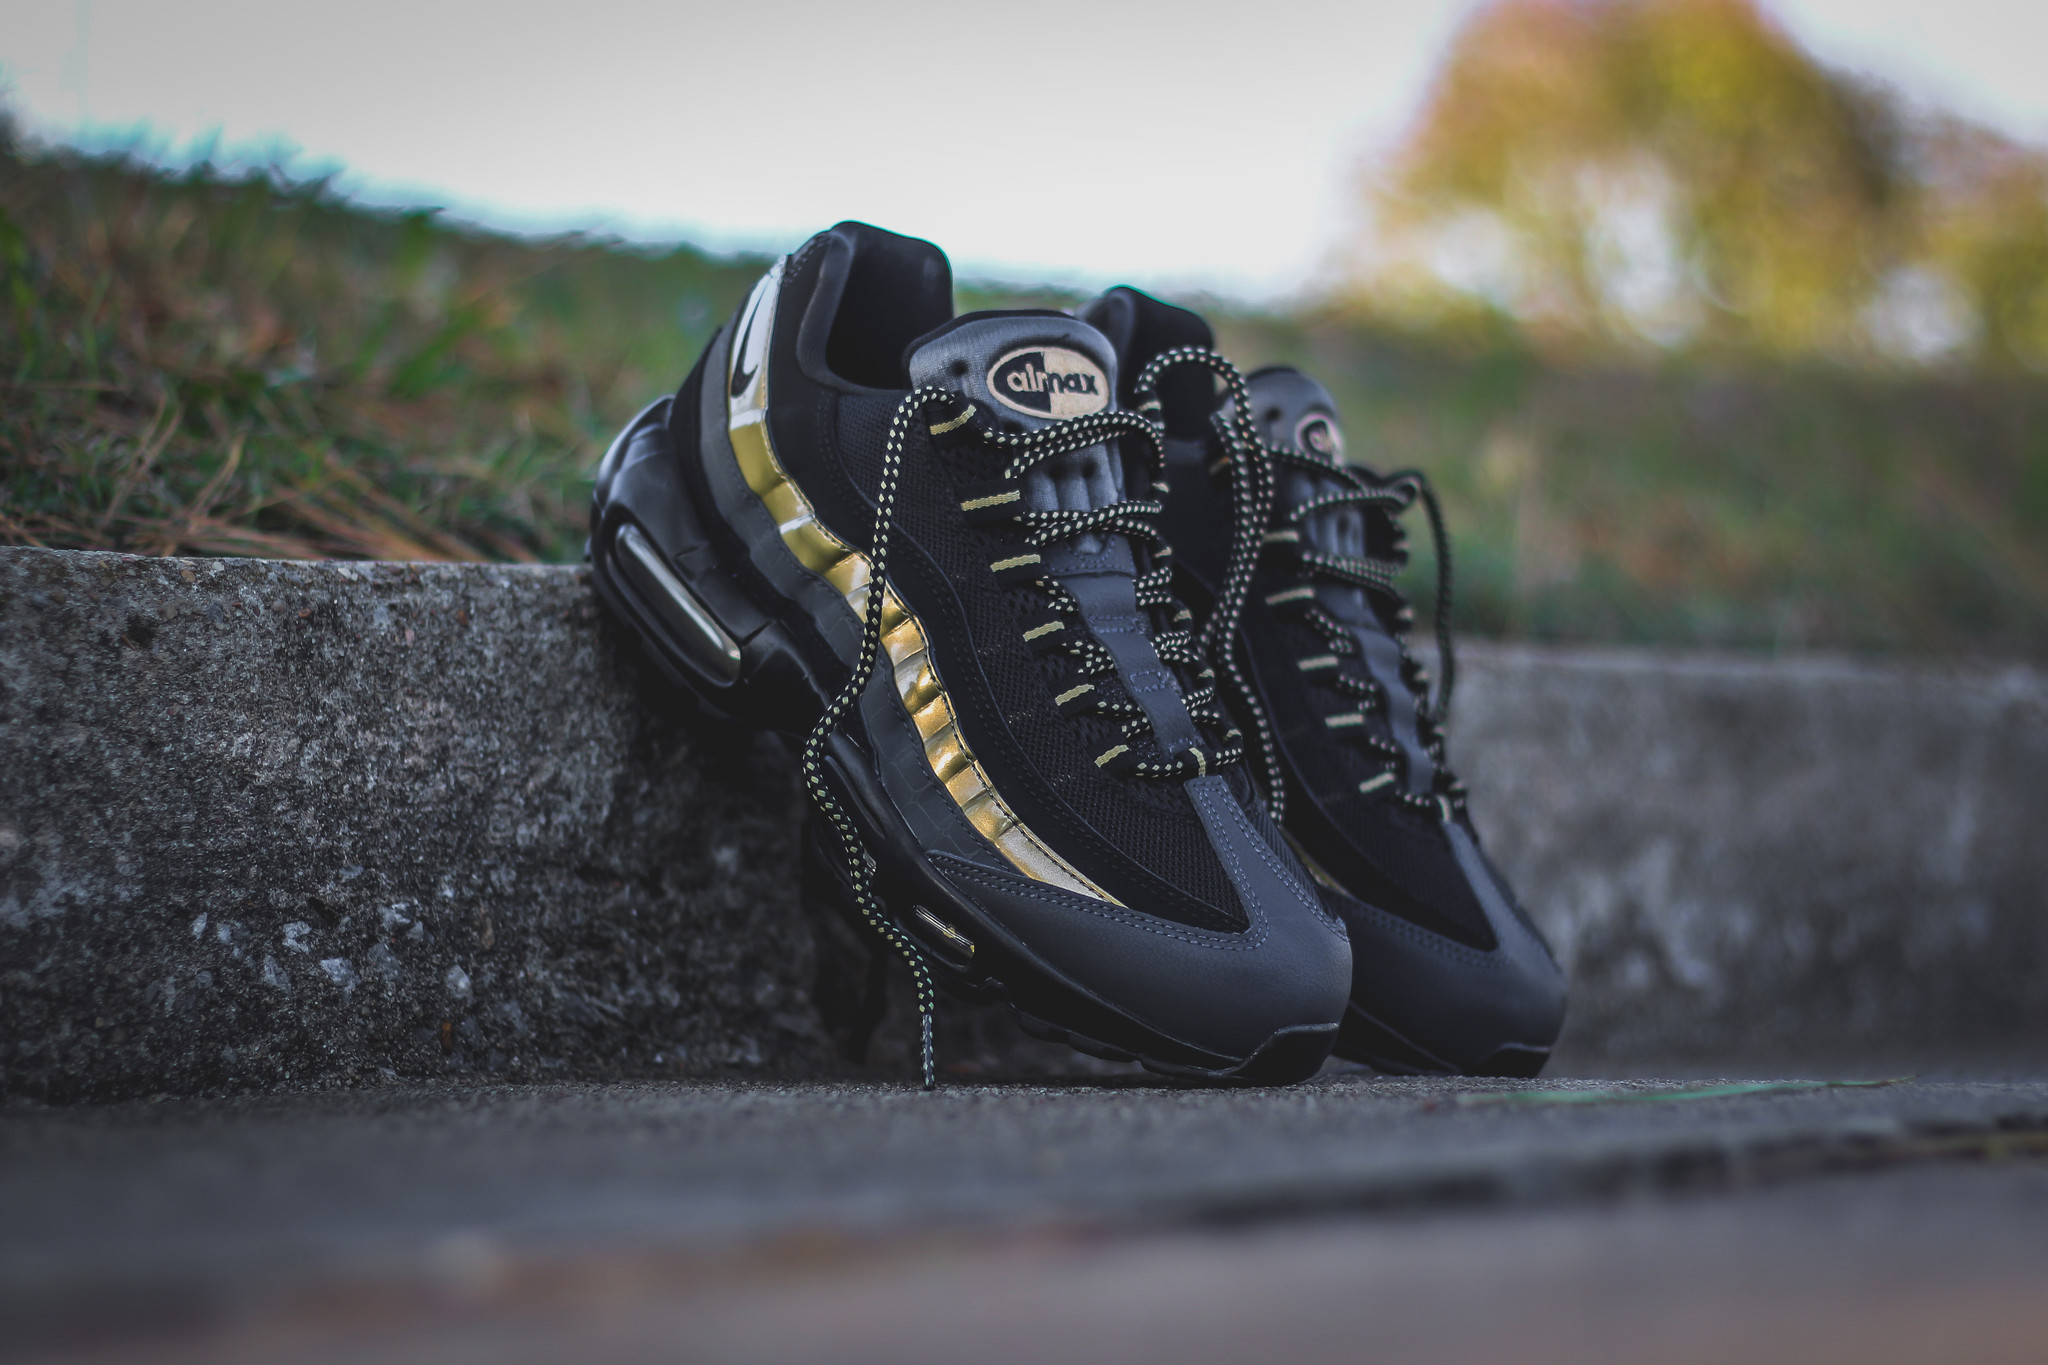 lanzador Pais de Ciudadania pastor  Nike Air Max 95 PRM Metallic Gold - Kicks Links